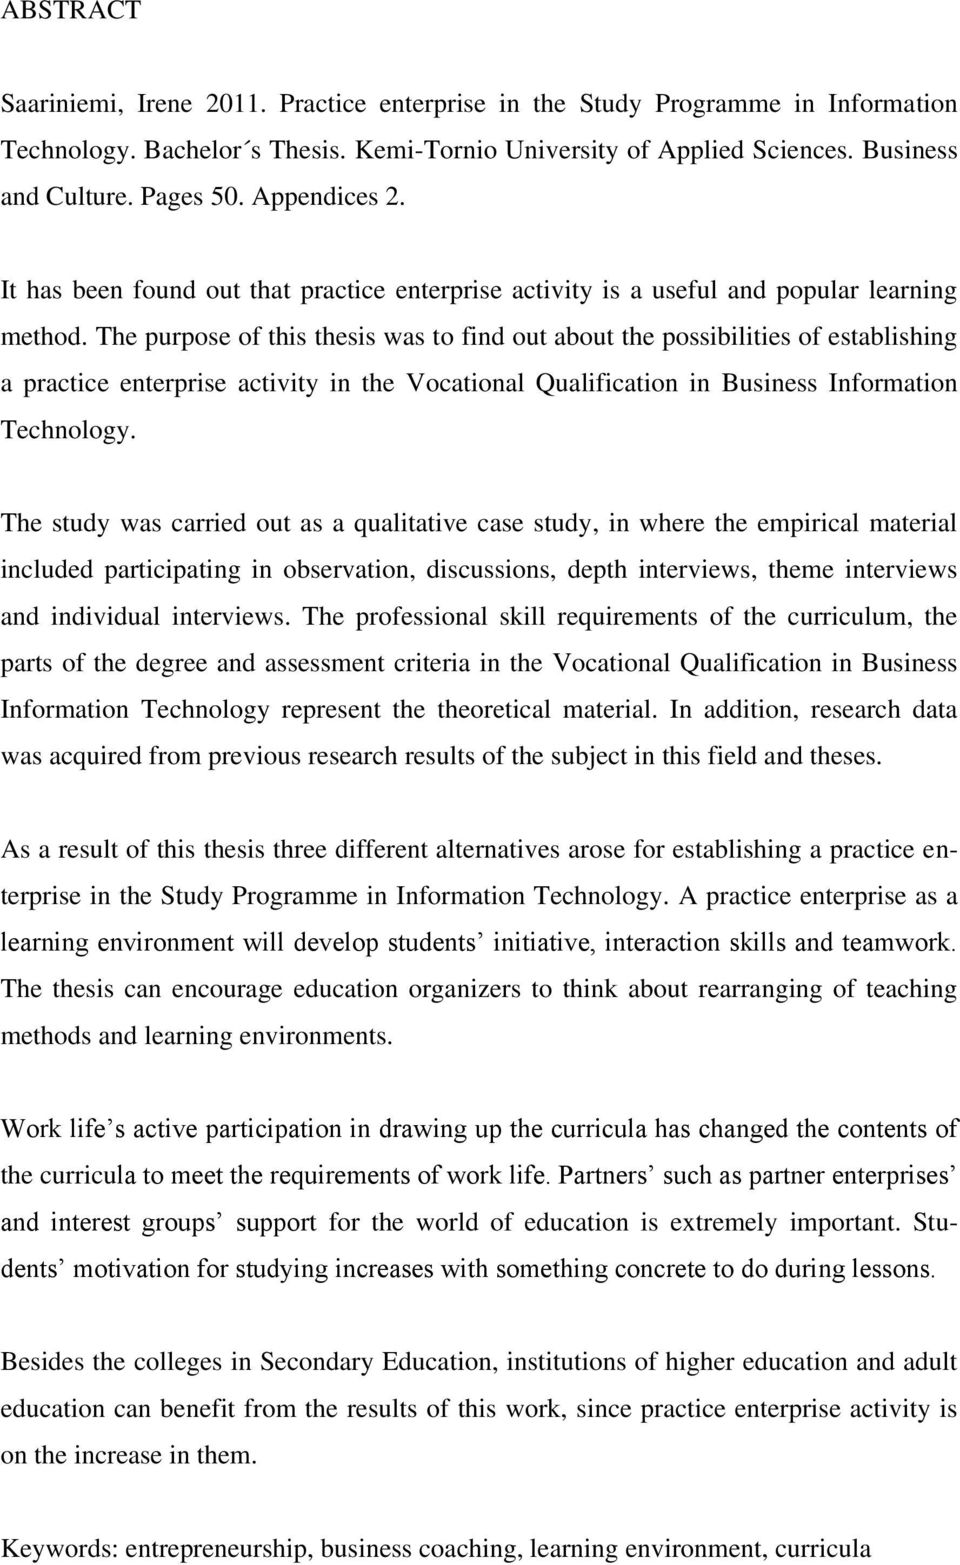 The purpose of this thesis was to find out about the possibilities of establishing a practice enterprise activity in the Vocational Qualification in Business Information Technology.